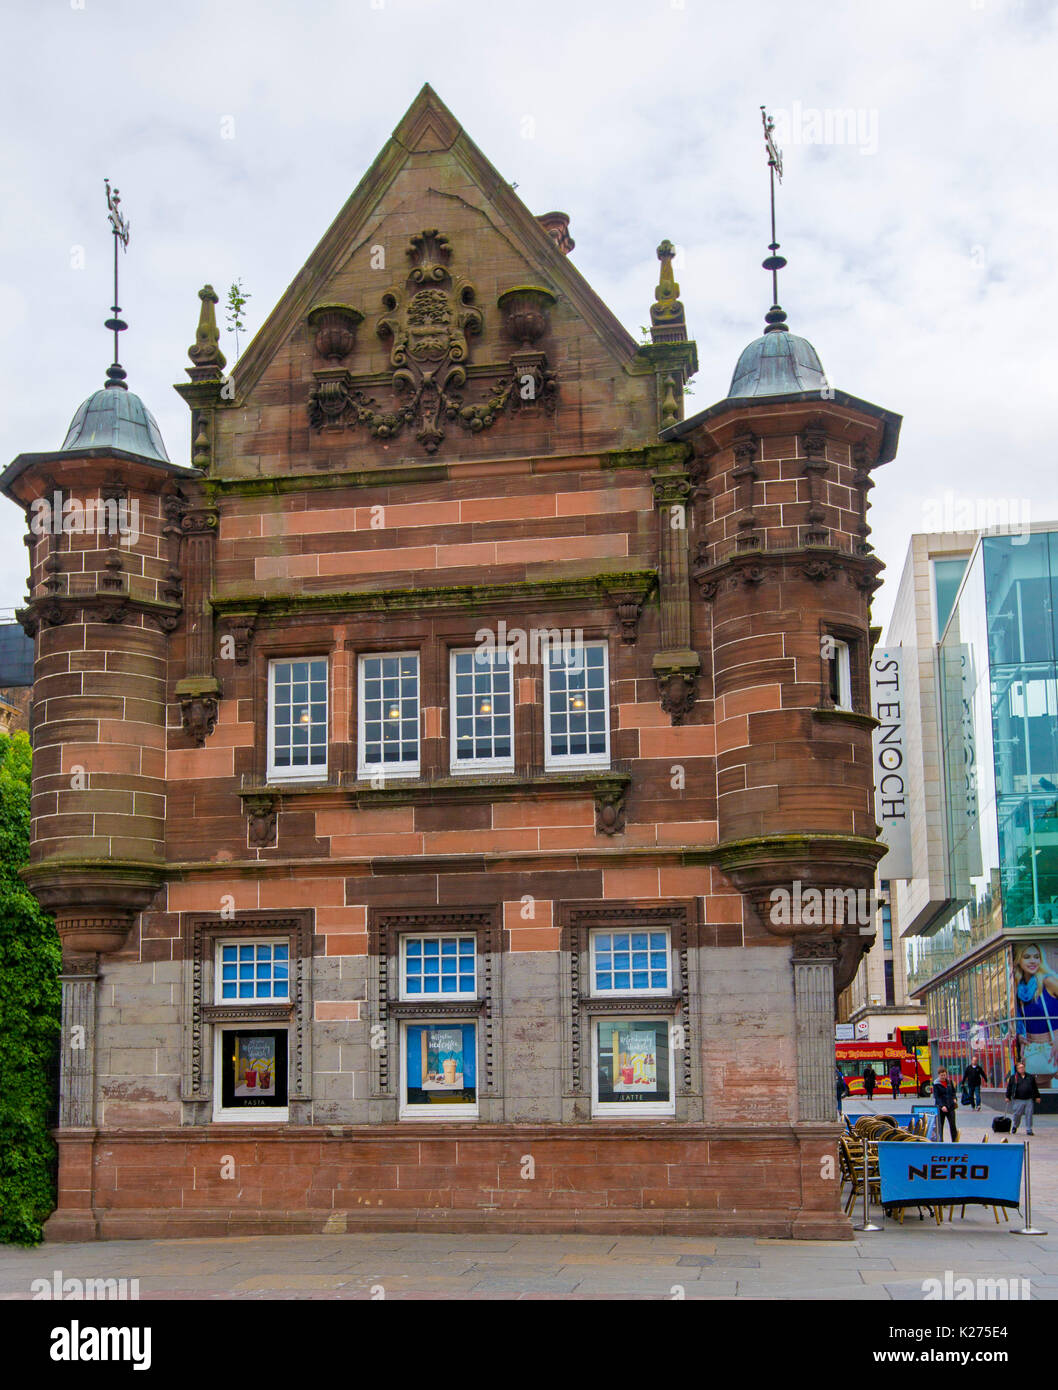 Elegant historic building, now a cafe, formerly entrance to St Enoch subway station in city of Glasgow, Scotland - Stock Image